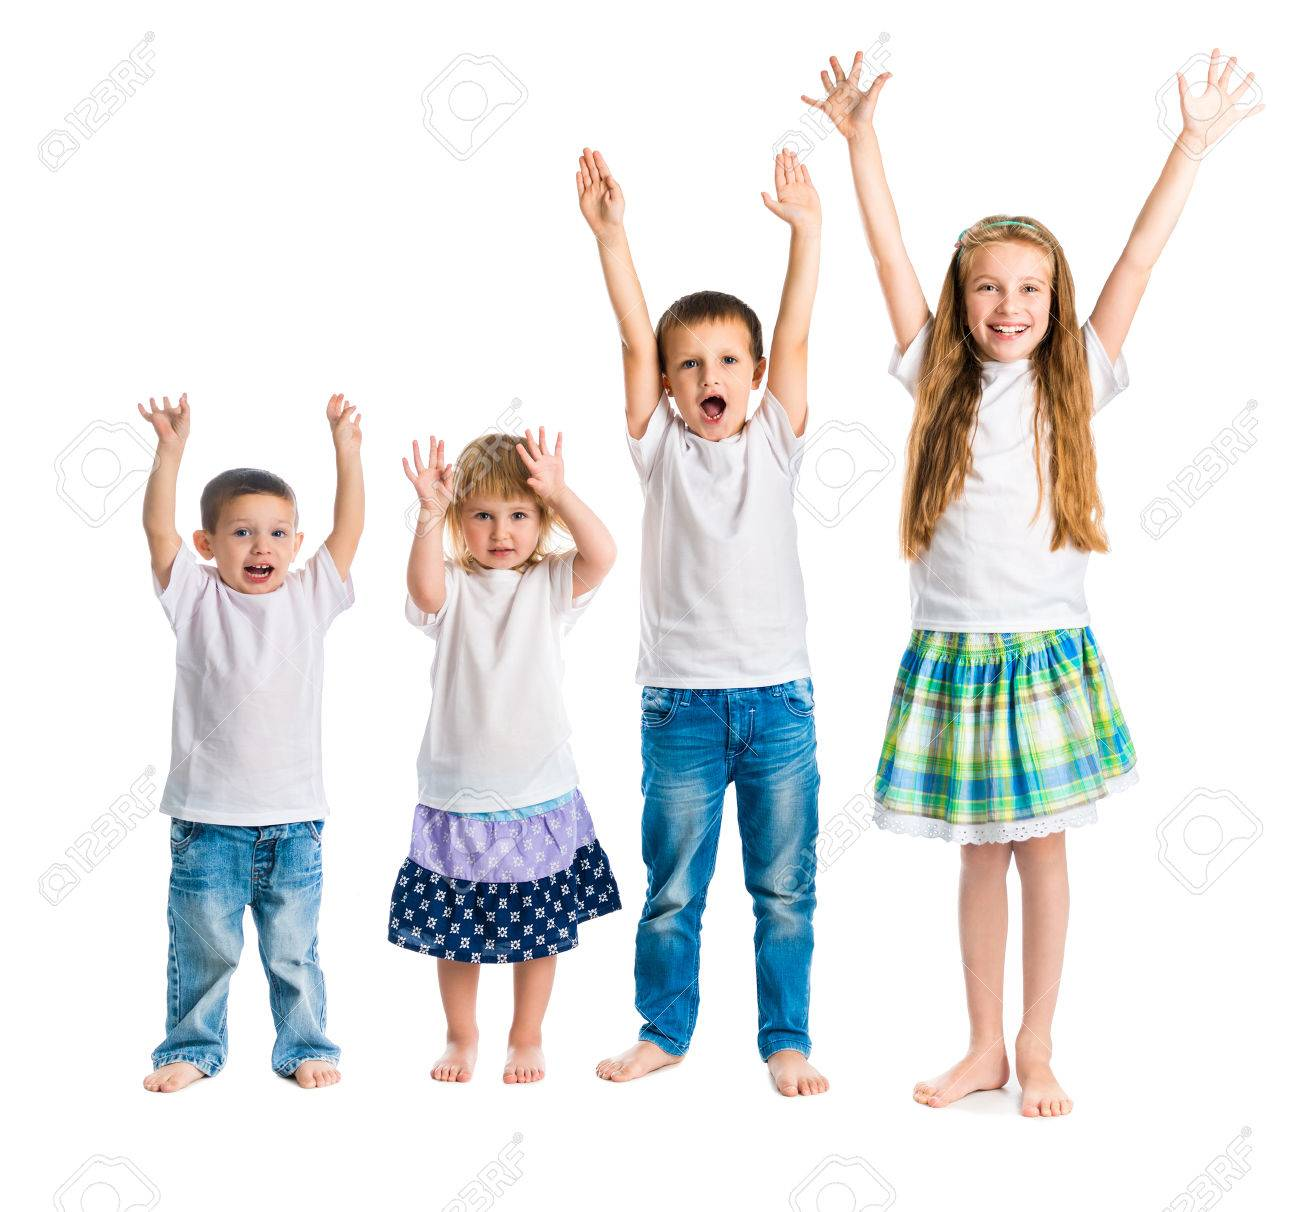 smiling children with arms up isolated on white background - 45297112